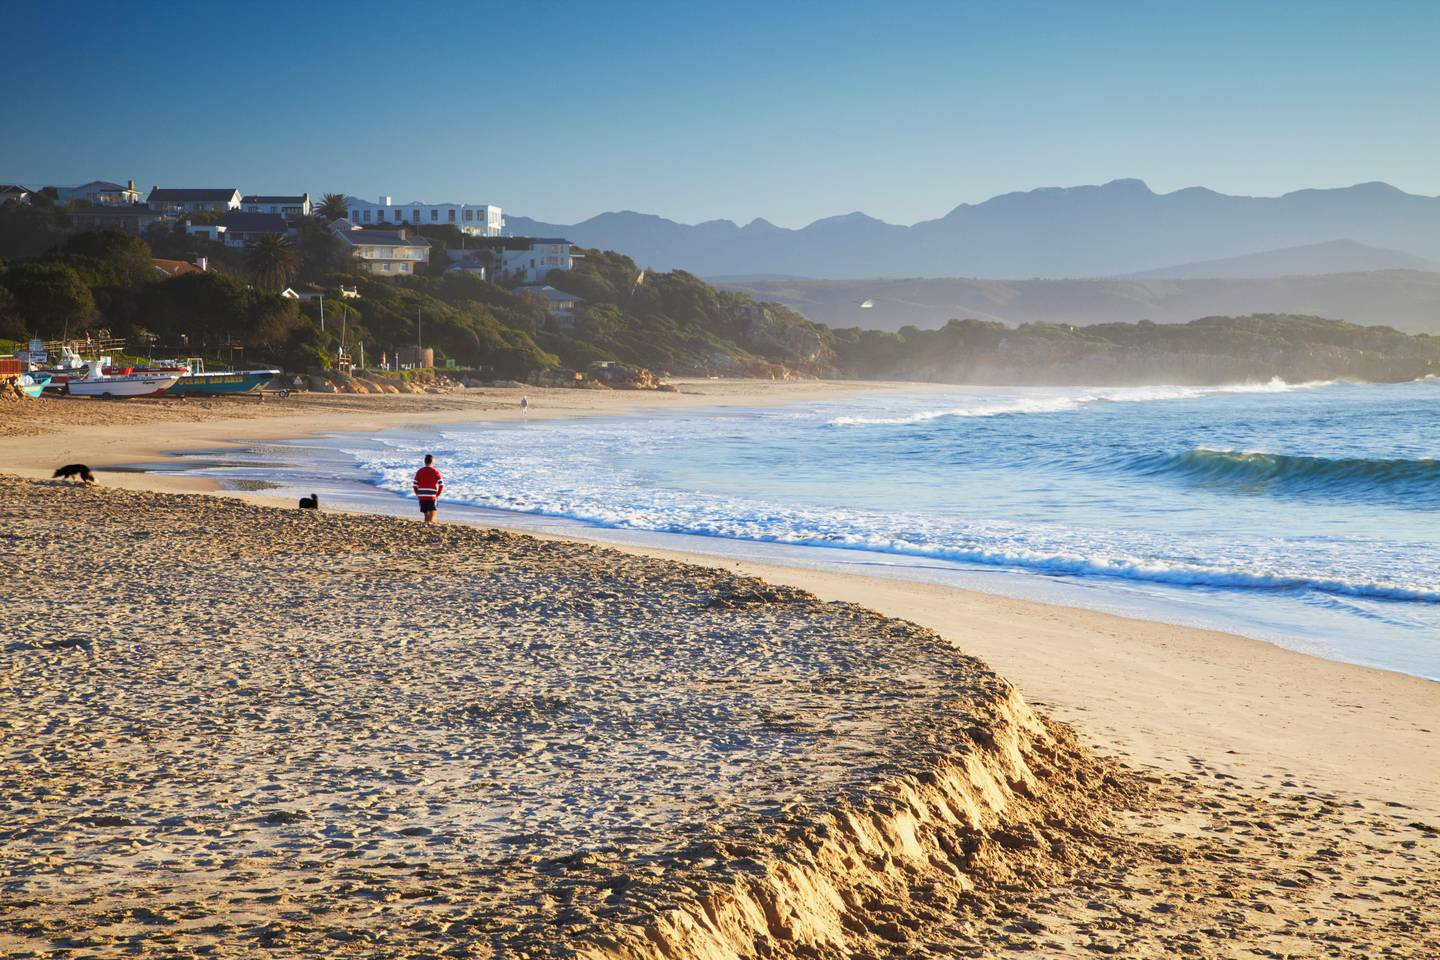 Plettenberg Bay beach at dawn, Western Cape, South Africa  (Getty Images) *** Local Caption ***  wk27ja-tr-south-africa02.jpg